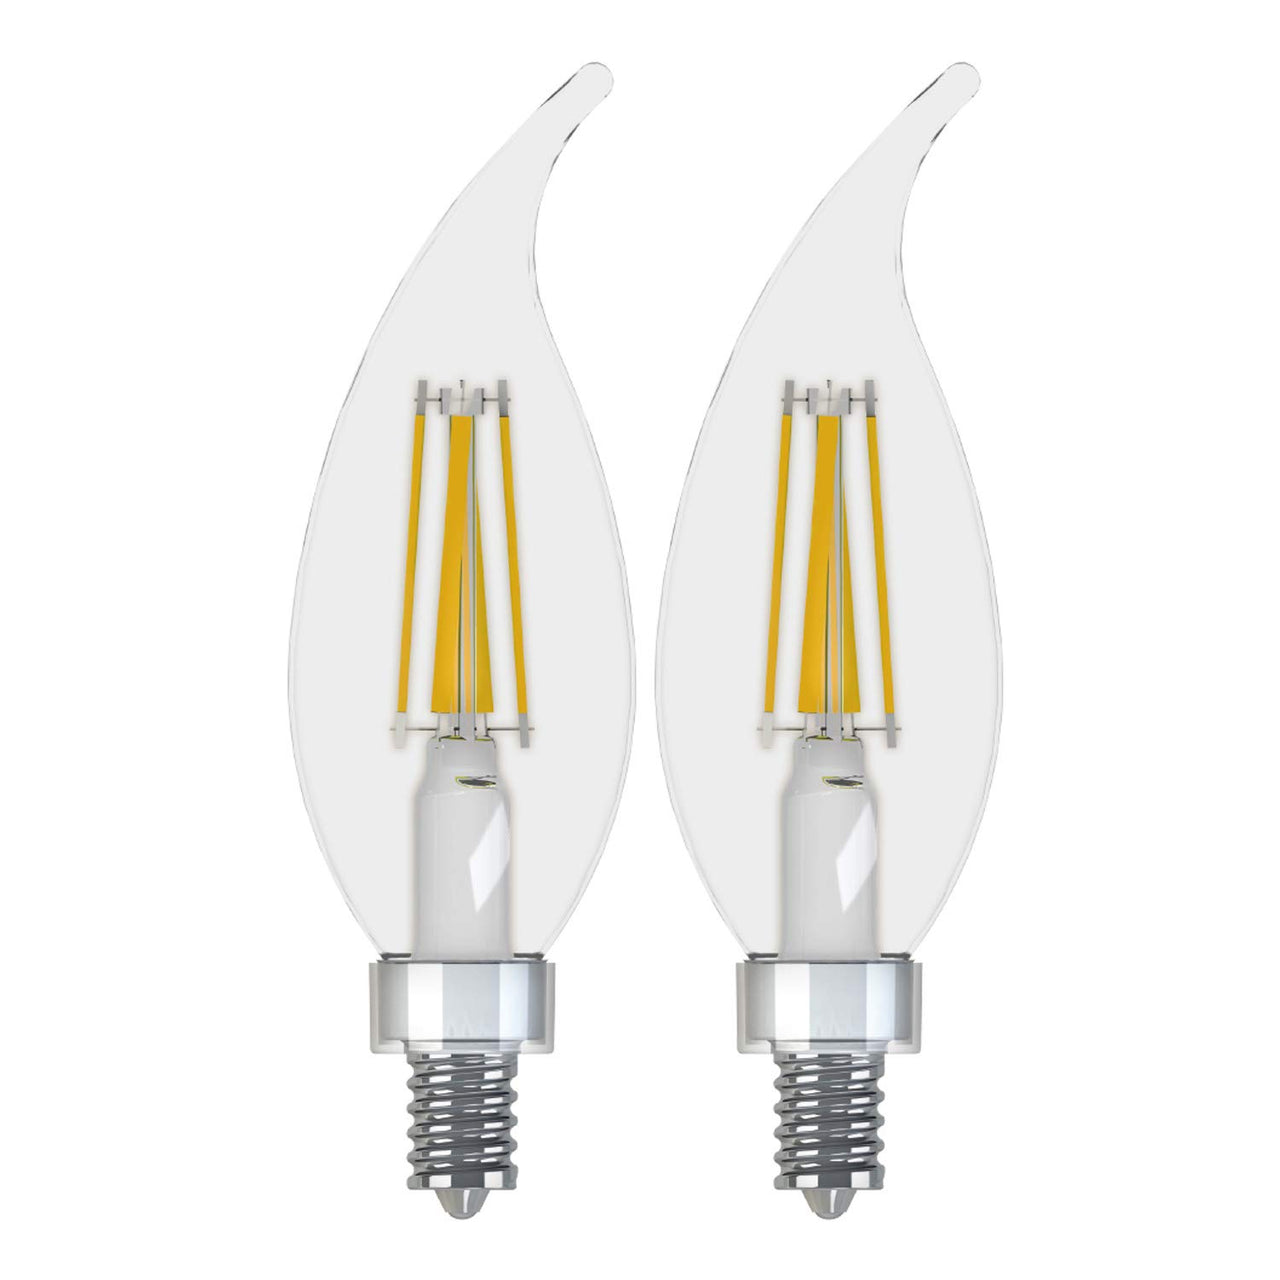 GE Relax 2-Pack 40 W Equivalent Dimmable Warm White A15 LED Light Fixture Light Bulbs Candelabra